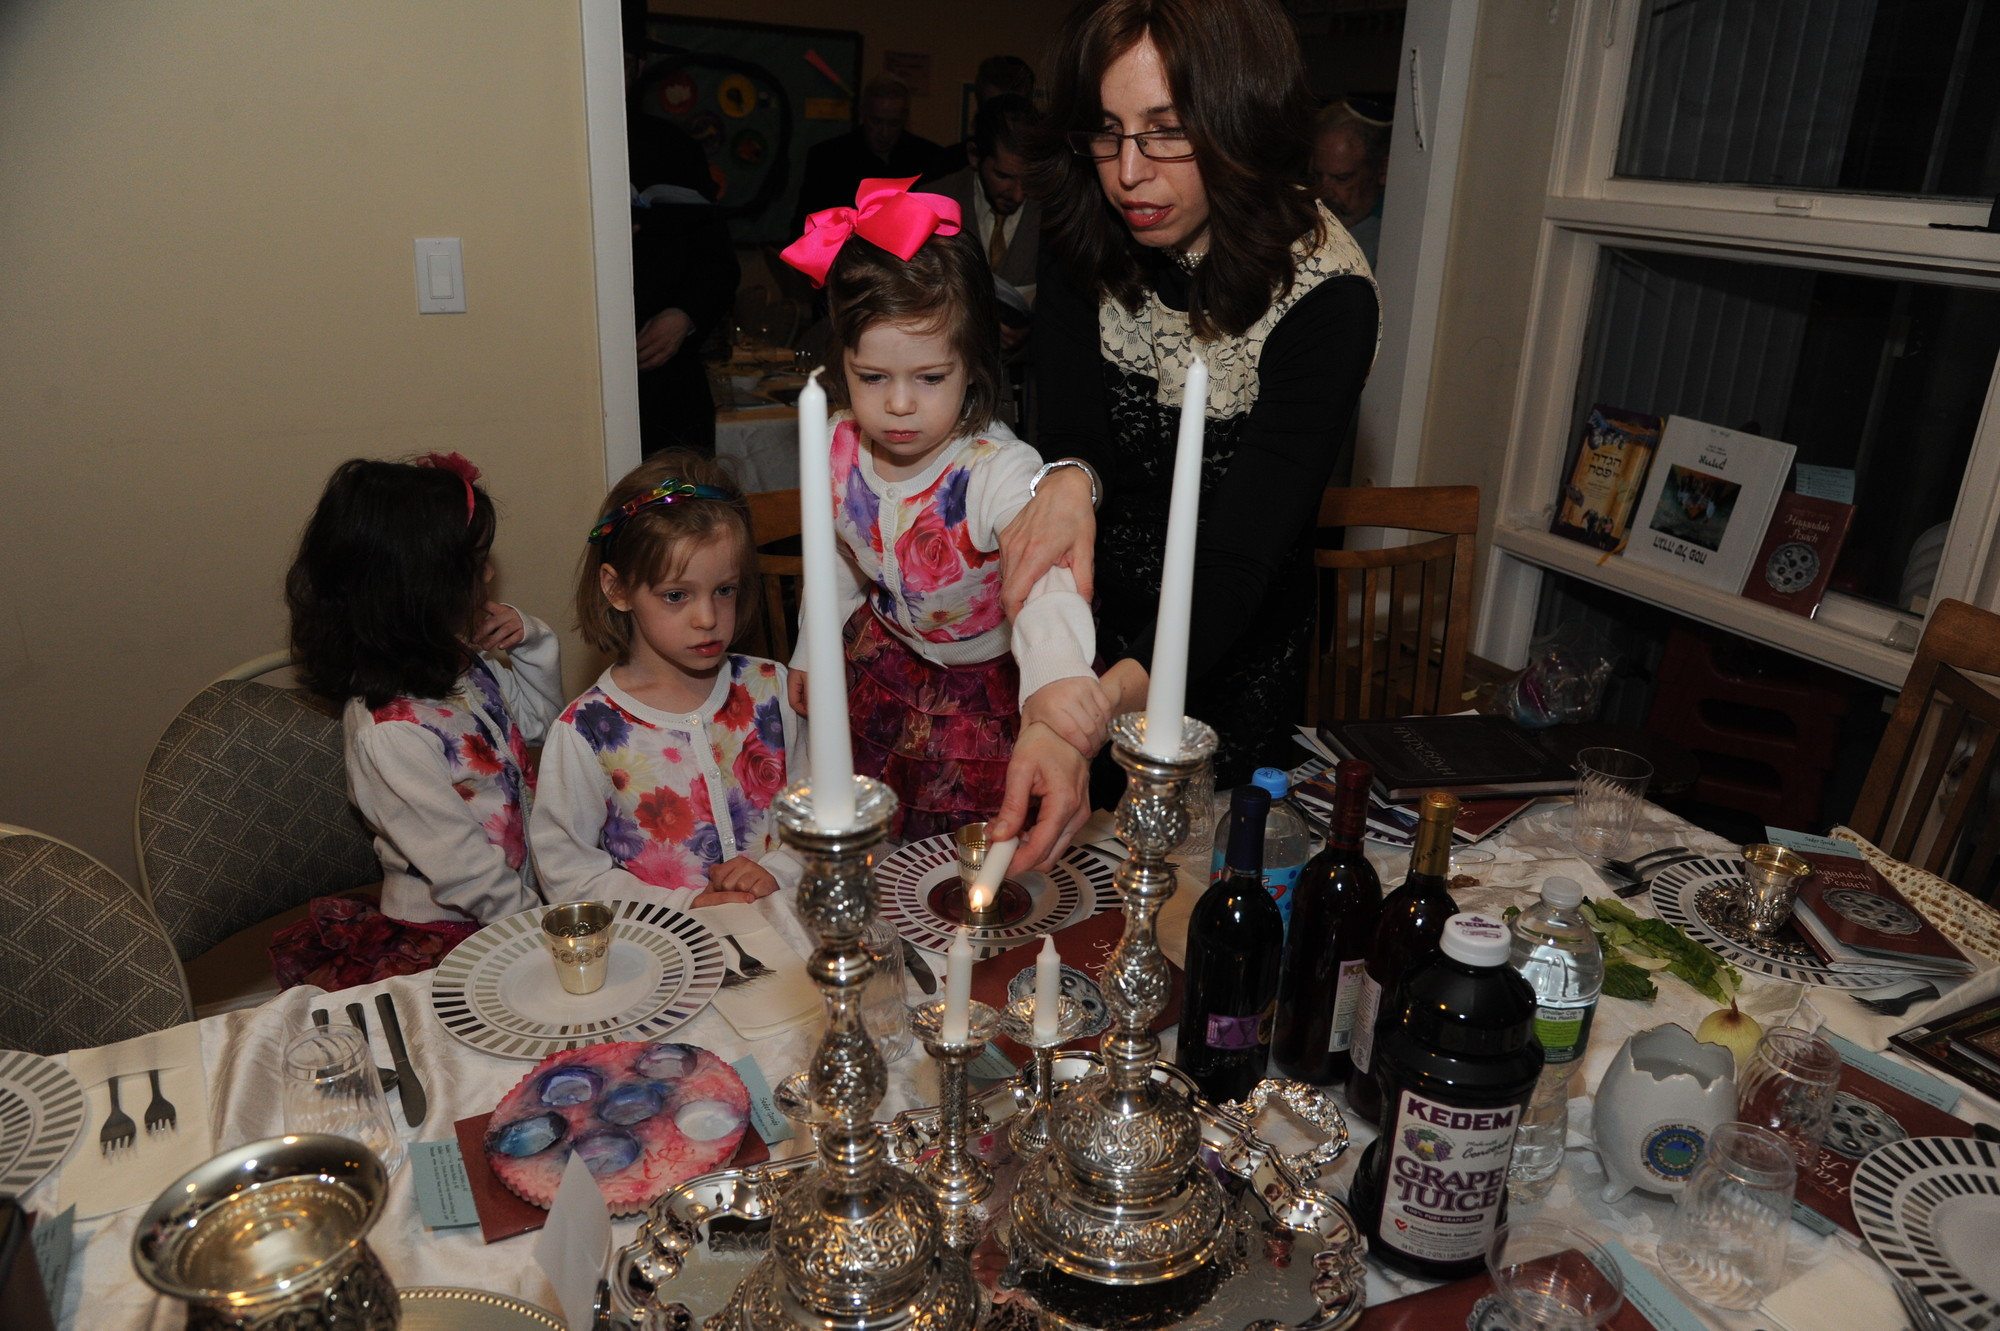 Chanie Kramer, right, lit candles with Mirel, Sarah and Leah before the Seder.